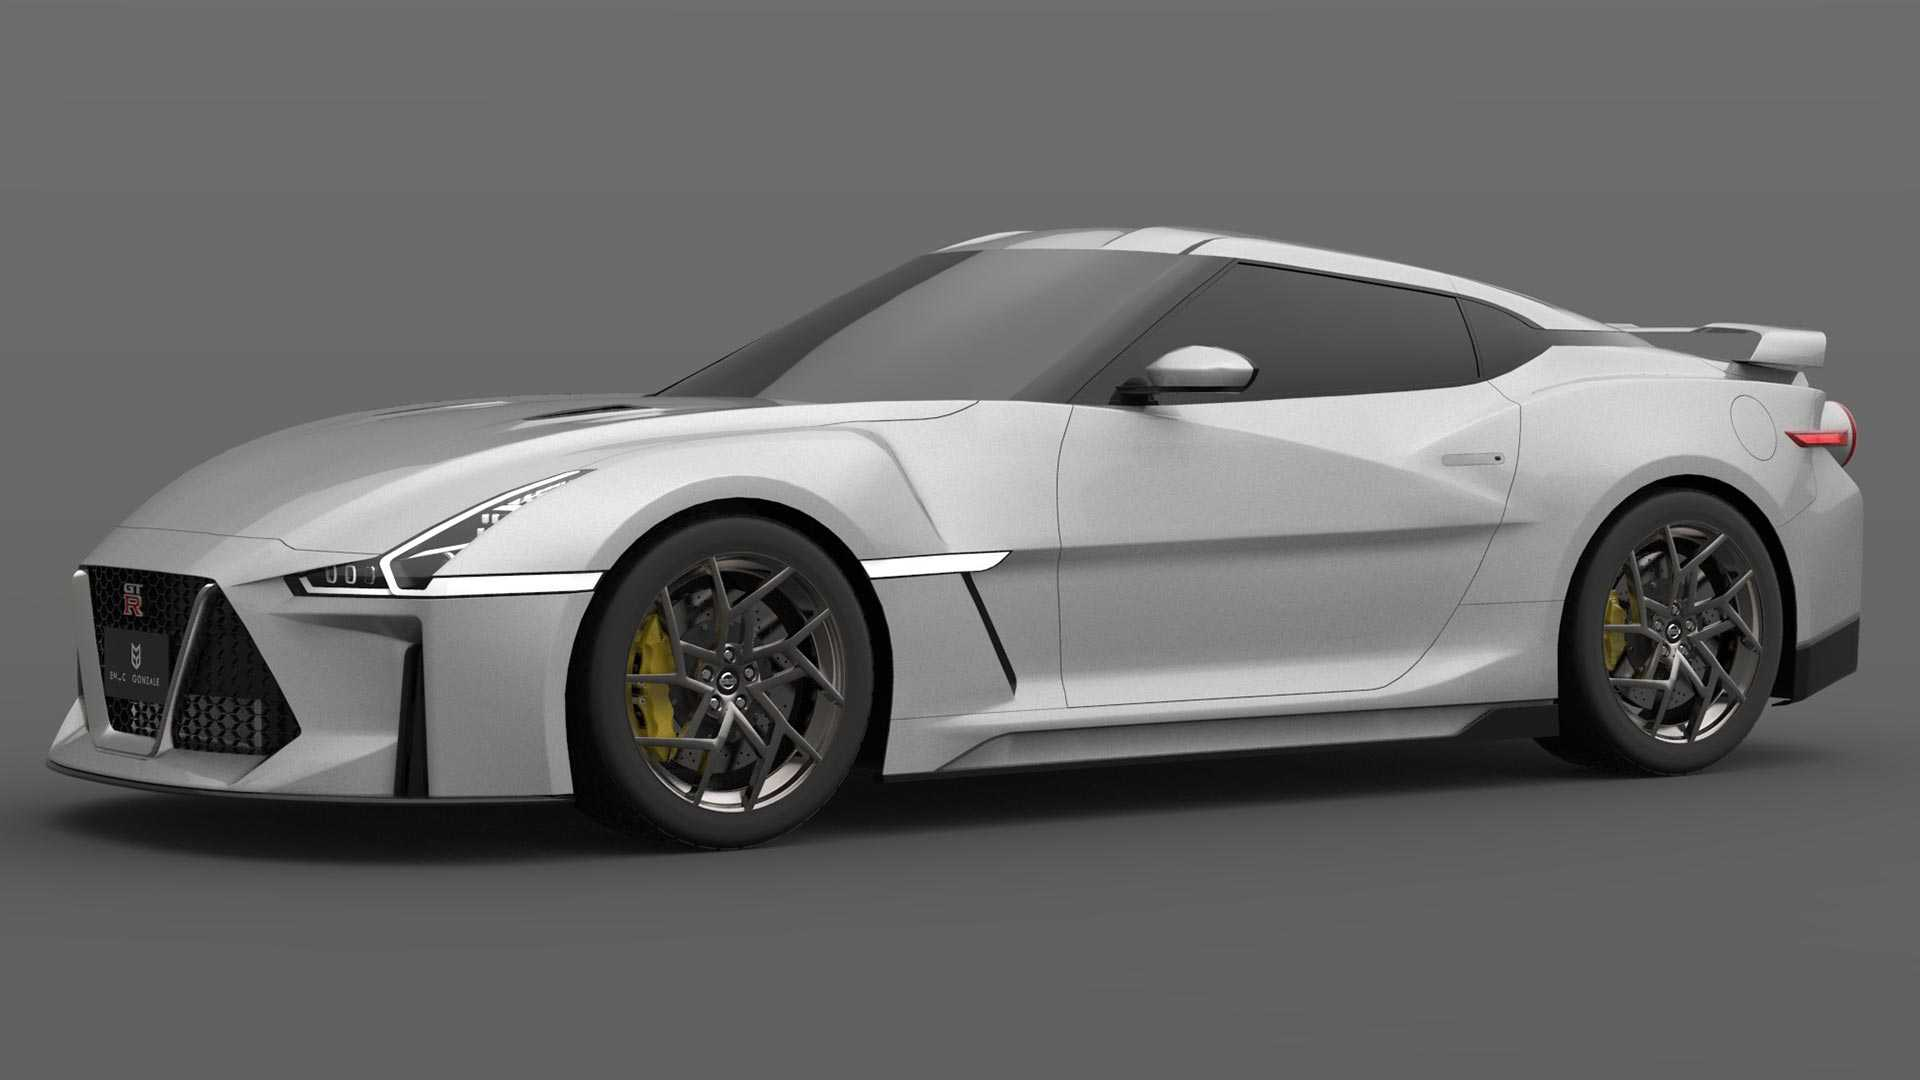 98 The Nissan Gtr R36 2020 Exterior And Interior